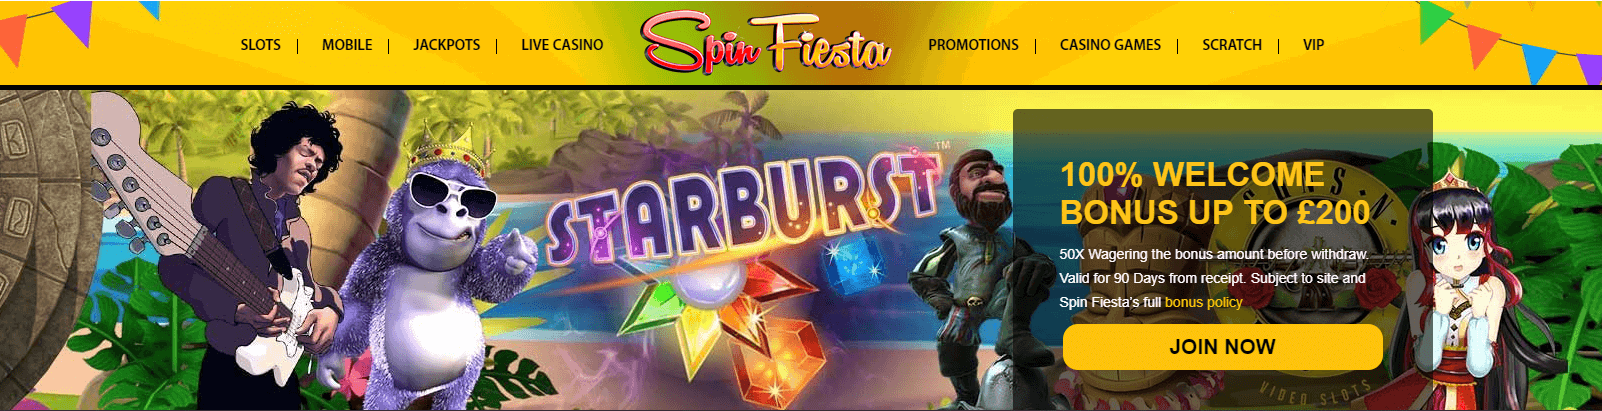 Spin Fiesta Welcome Offer